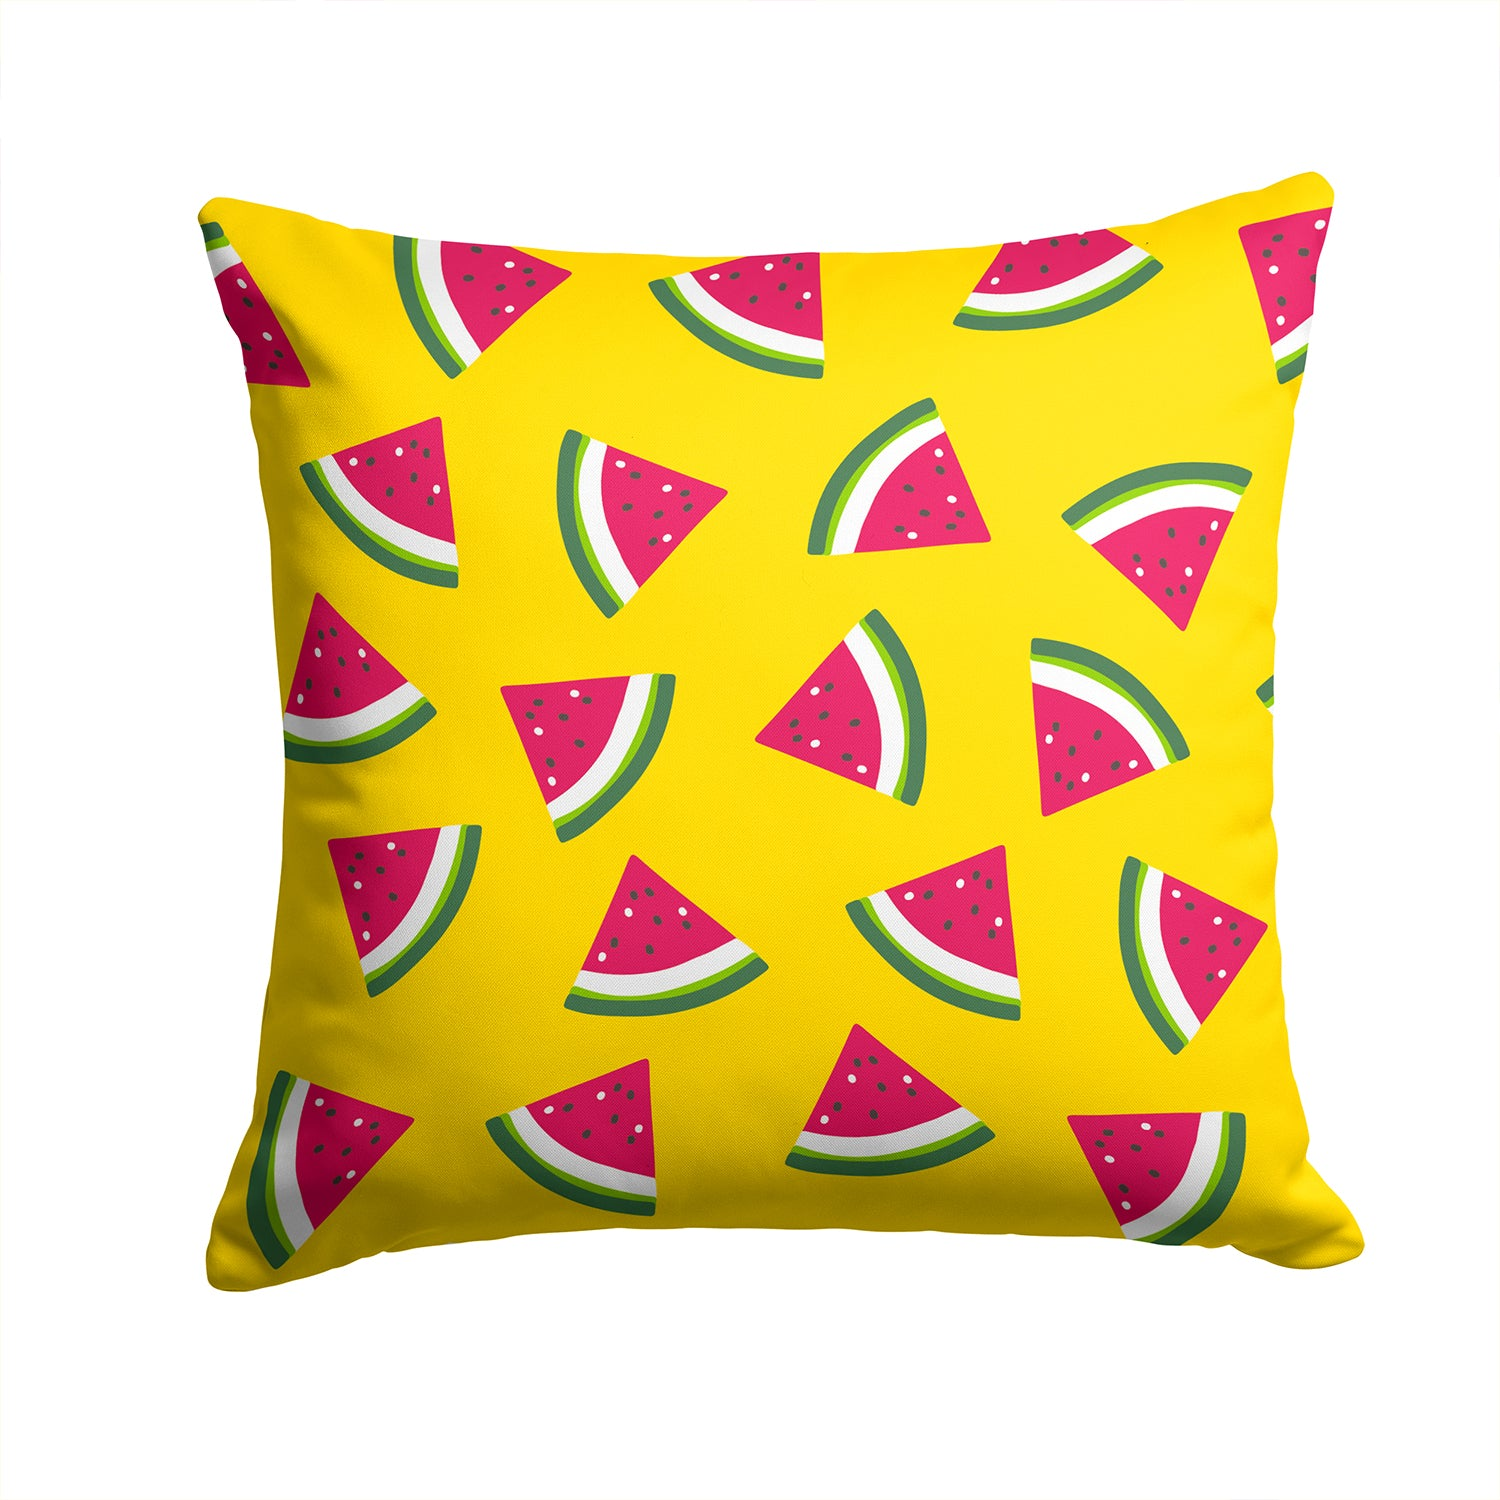 Watermelon on Yellow Fabric Decorative Pillow BB5144PW1414 by Caroline's Treasures